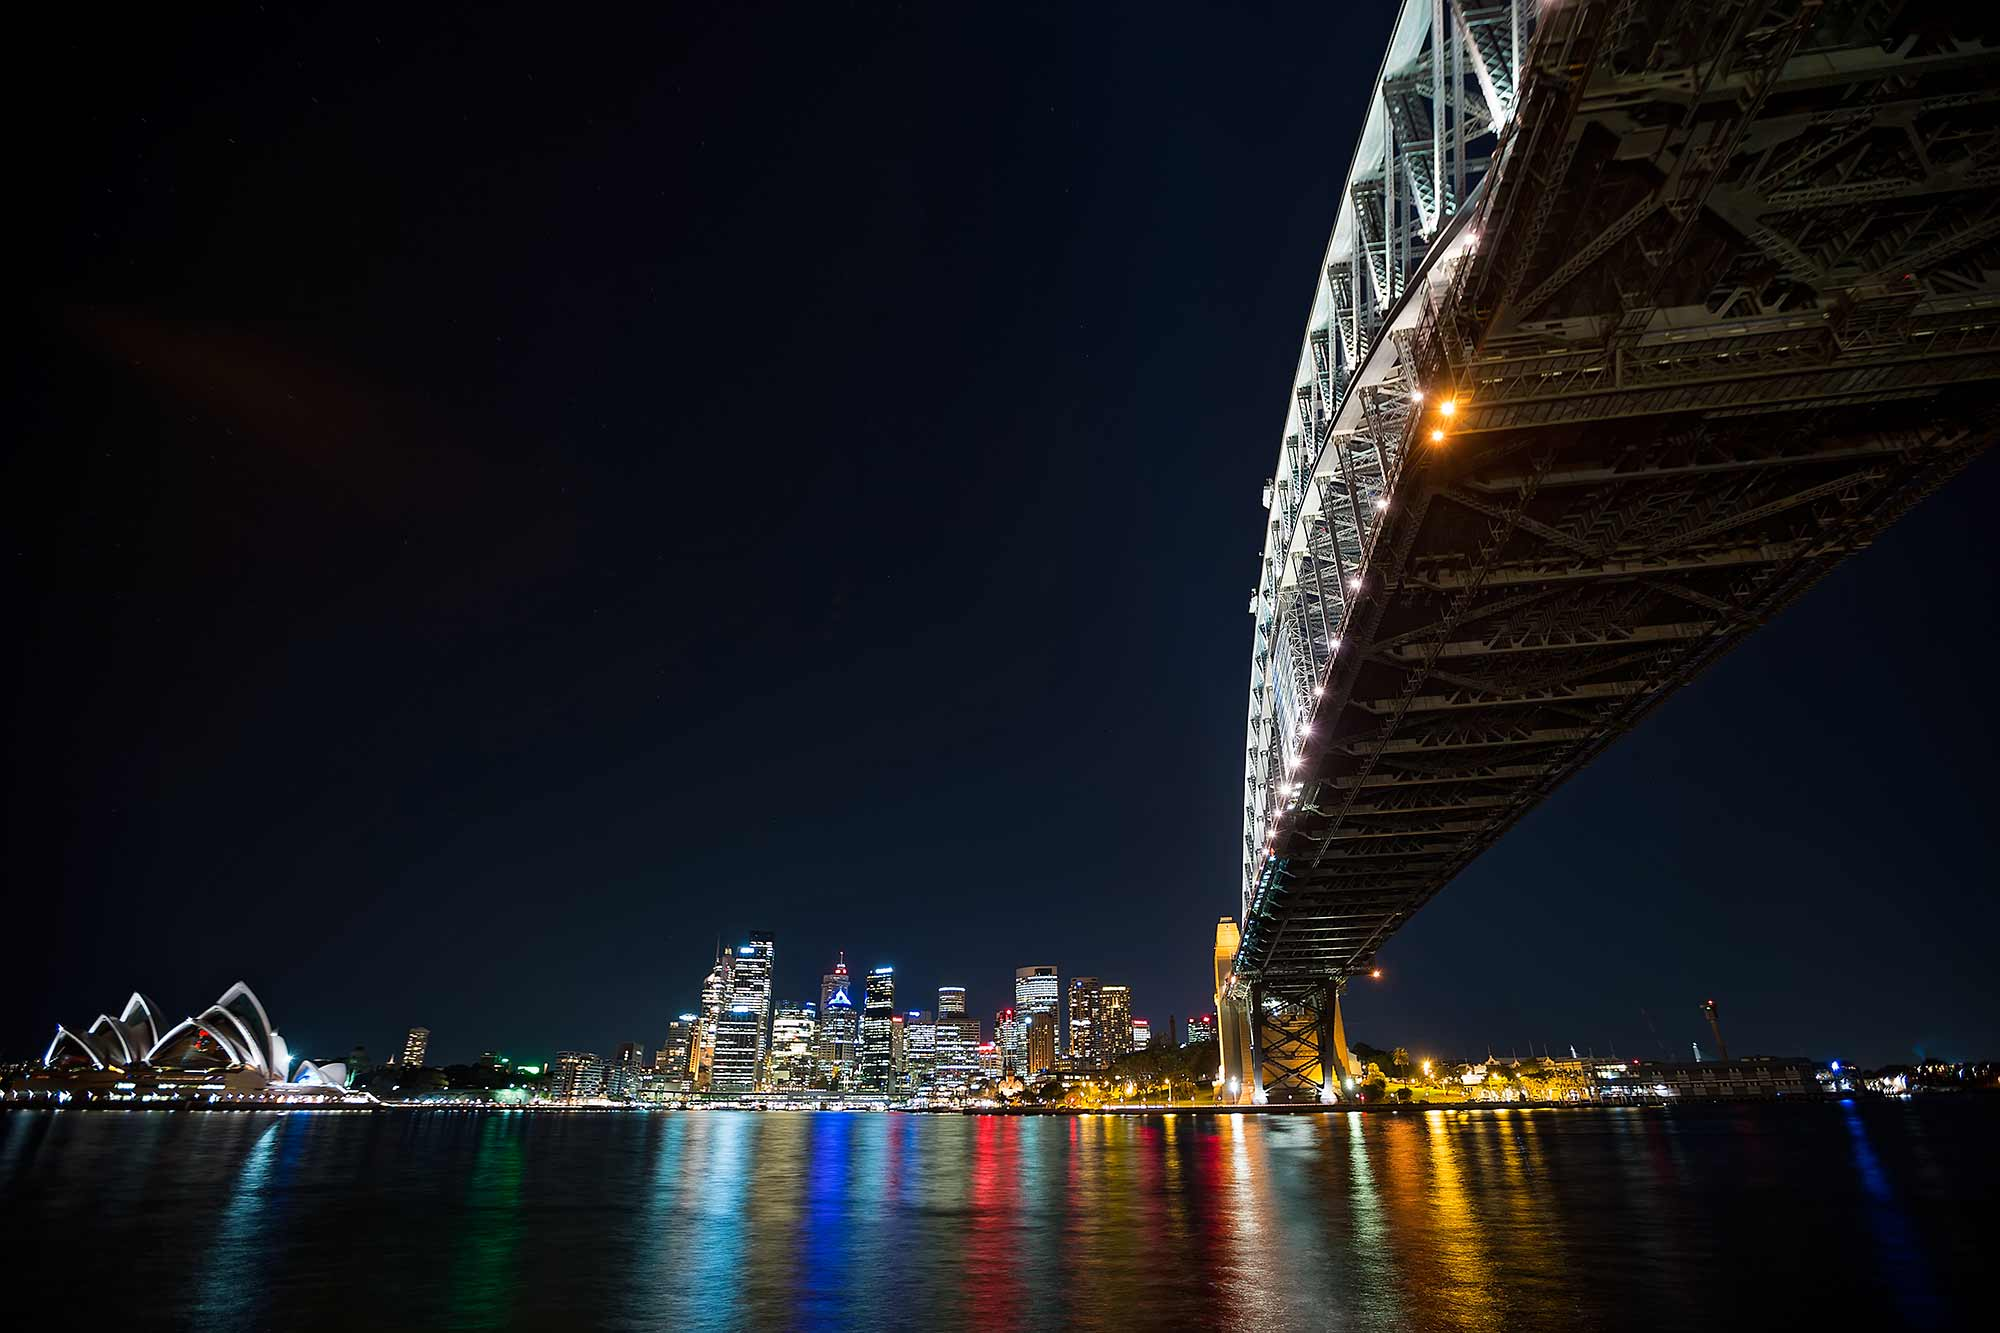 View of Darling Harbour: Sydney skyline at night. © Ulli Maier & Nisa Maier